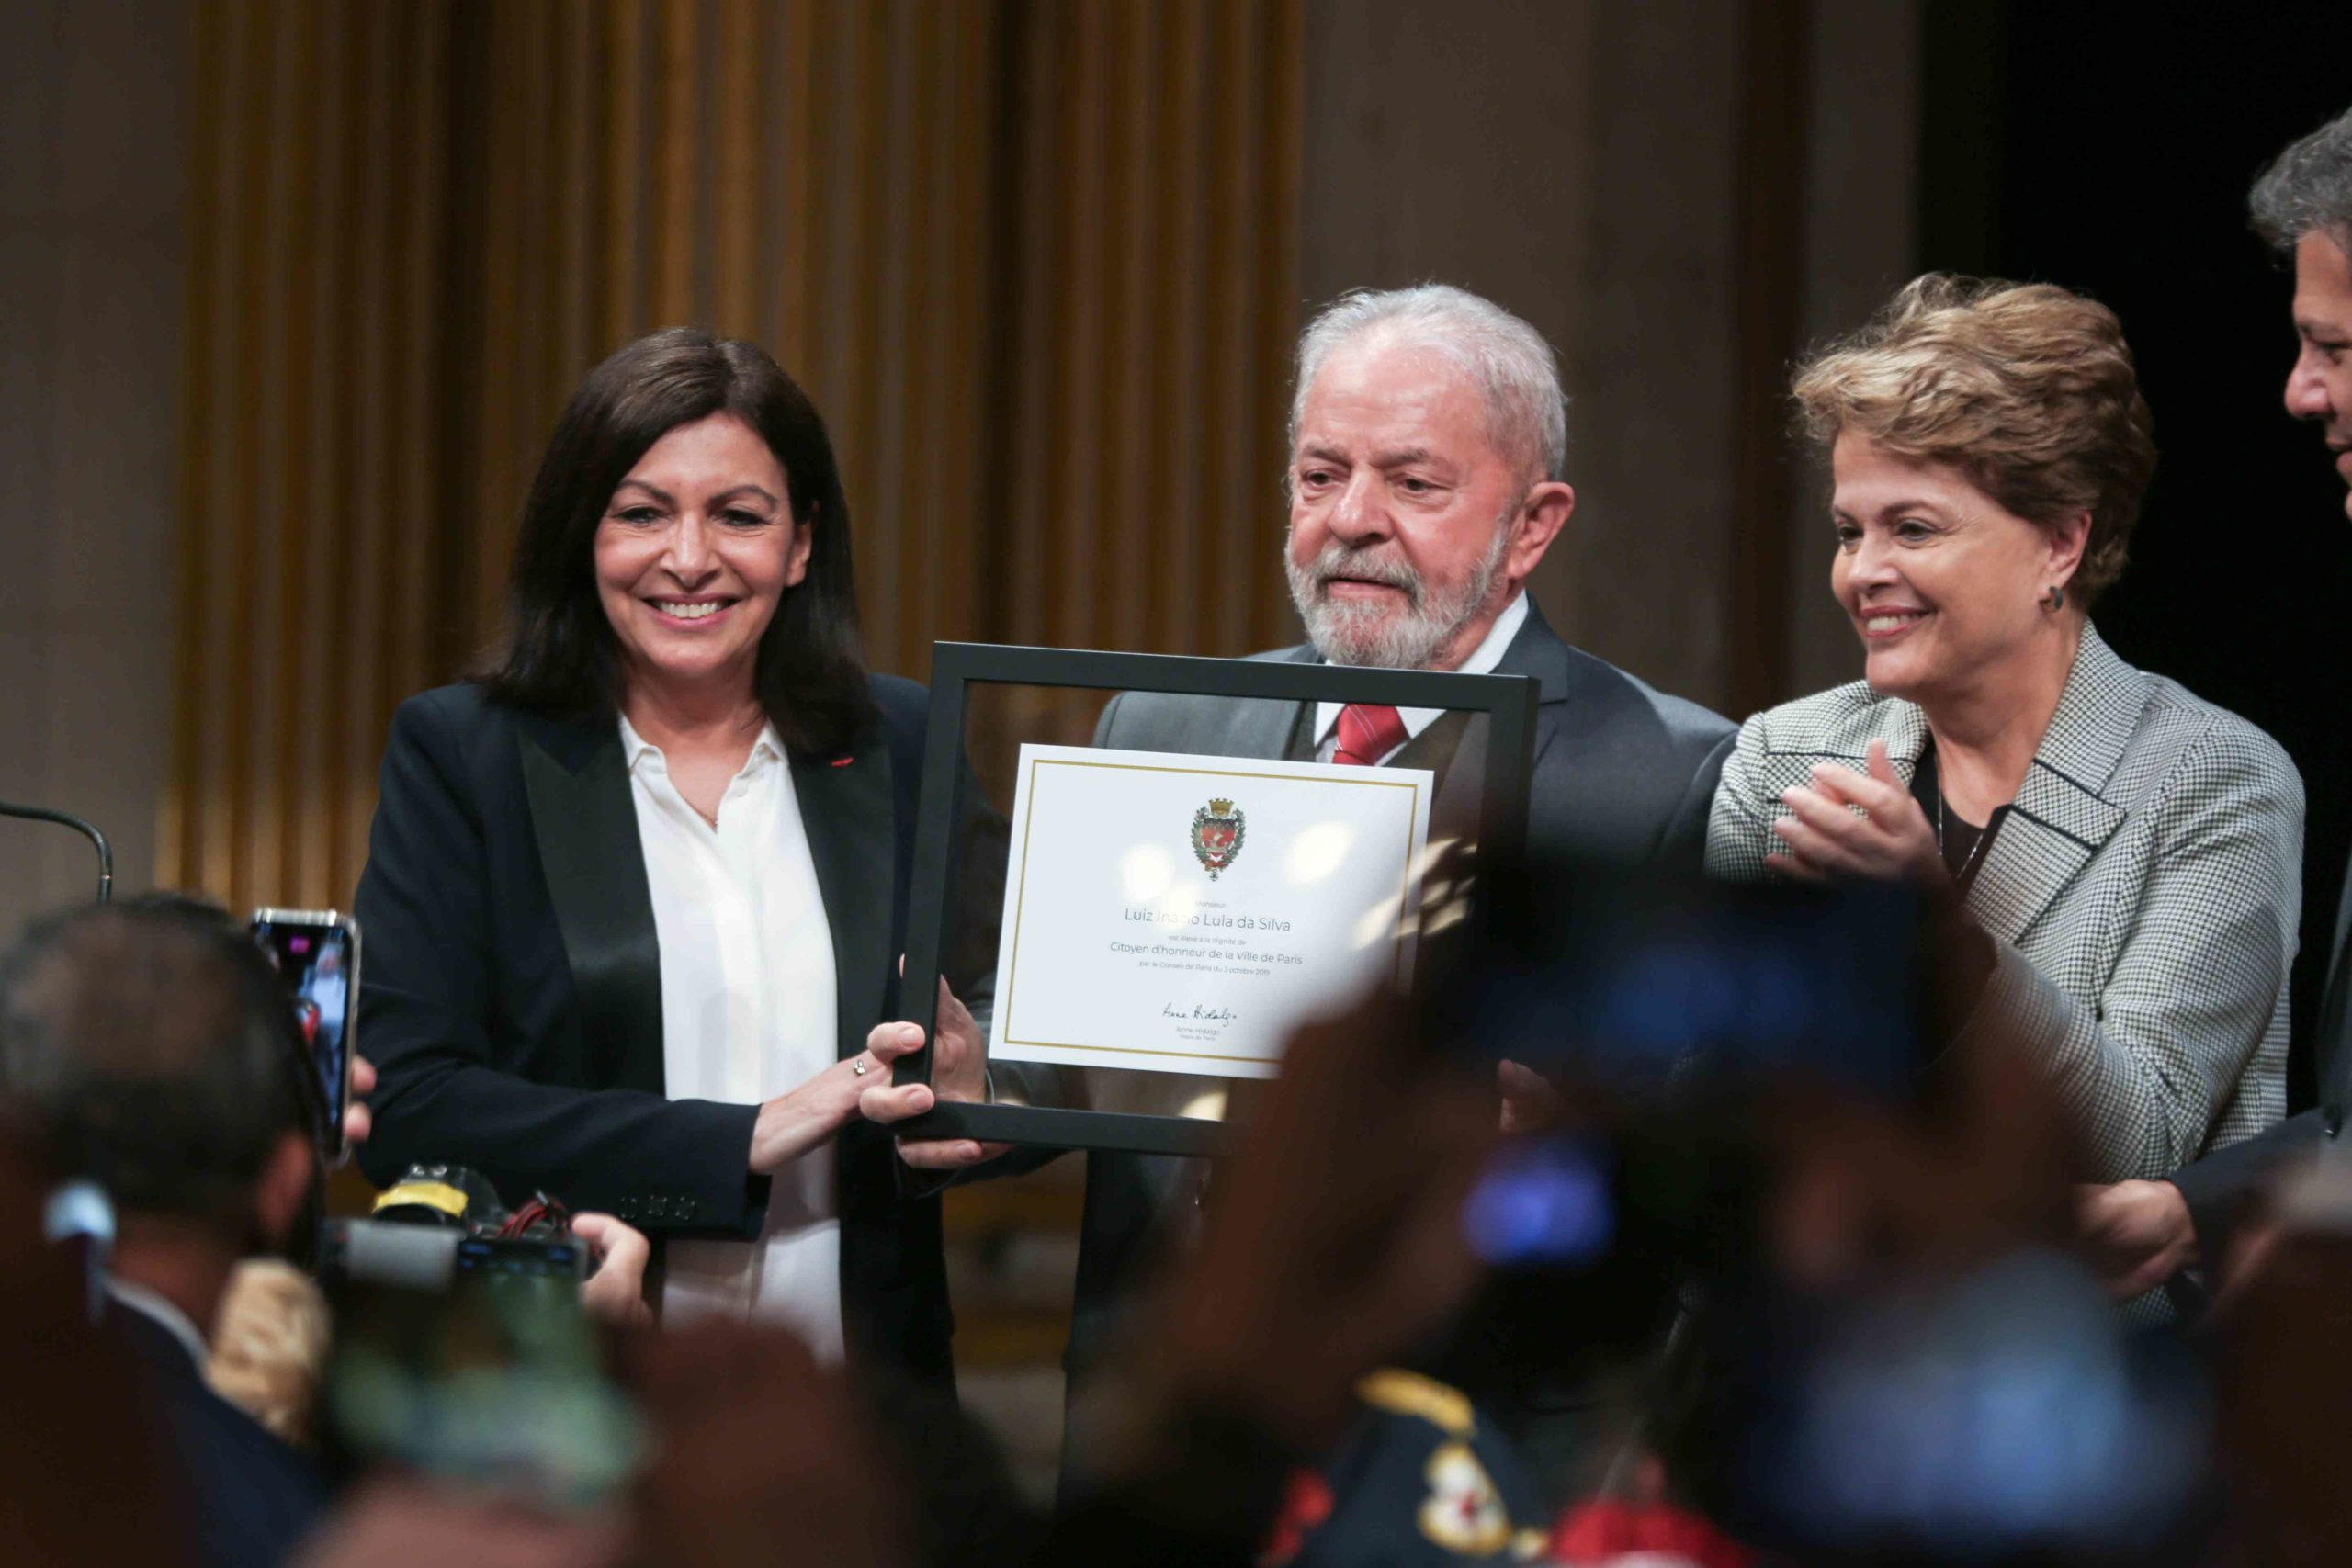 Former Brazilian president Luiz Inacio Lula da Silva (C) flanked by Paris Mayor and candidate for re-election Anne Hidalgo (L) and Former Brazilian president Dilma Rousseff (R) is named honorary citizen of the city of Paris during a ceremony at the City Ha